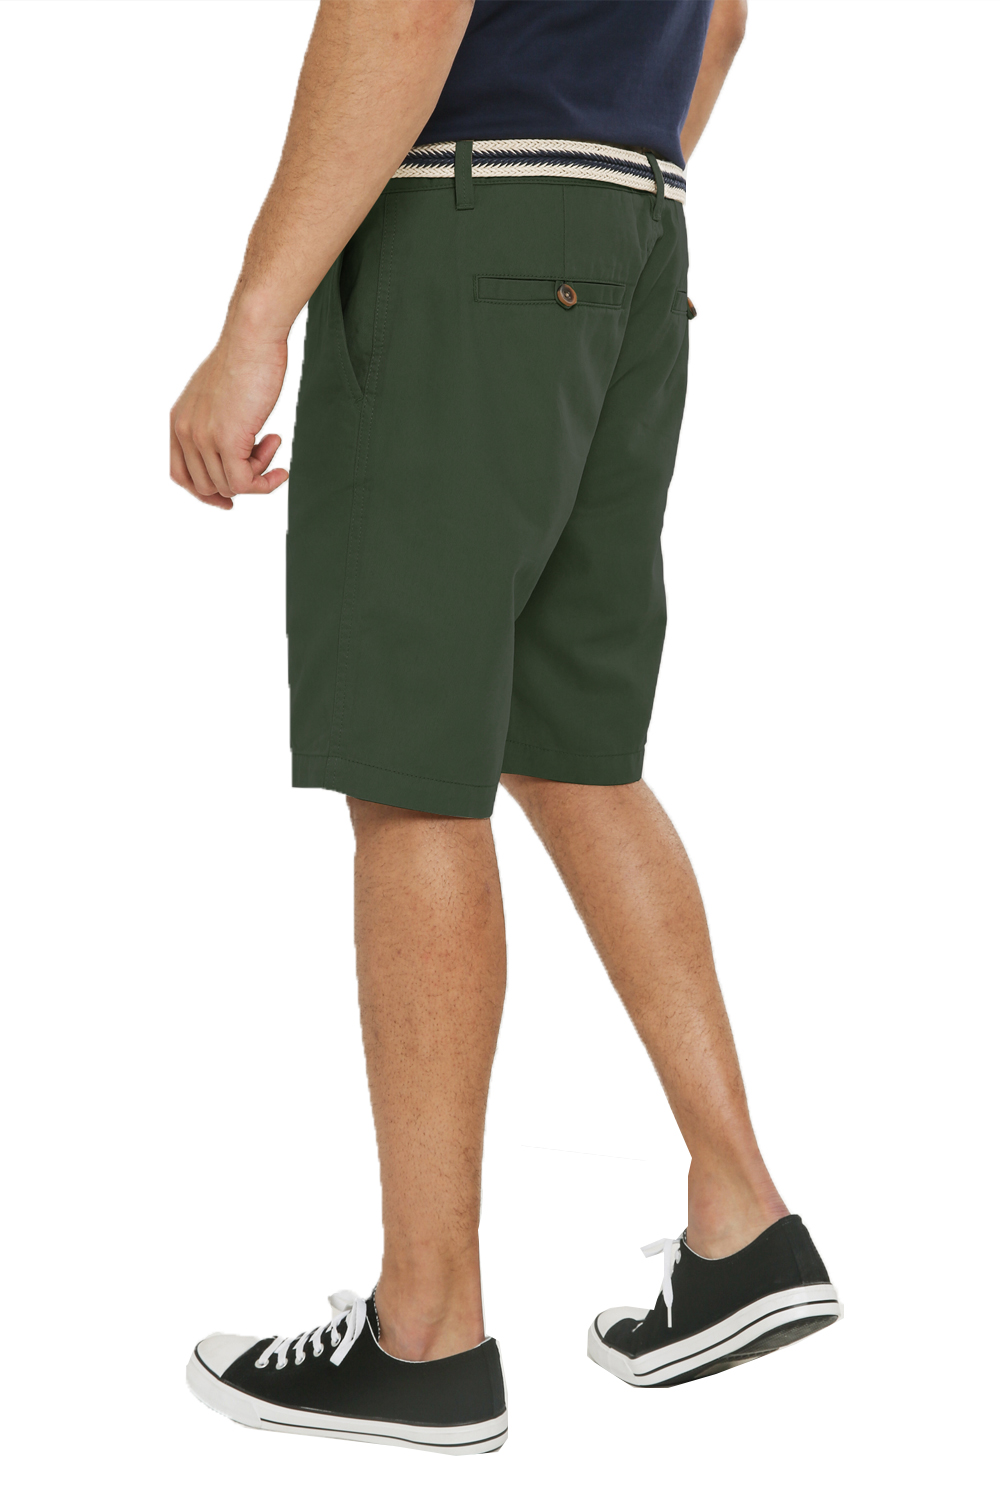 Threadbare-Mens-Slim-Fit-Belted-Chino-Shorts-Summer-Casual-Cotton-Smart-Bottoms thumbnail 31